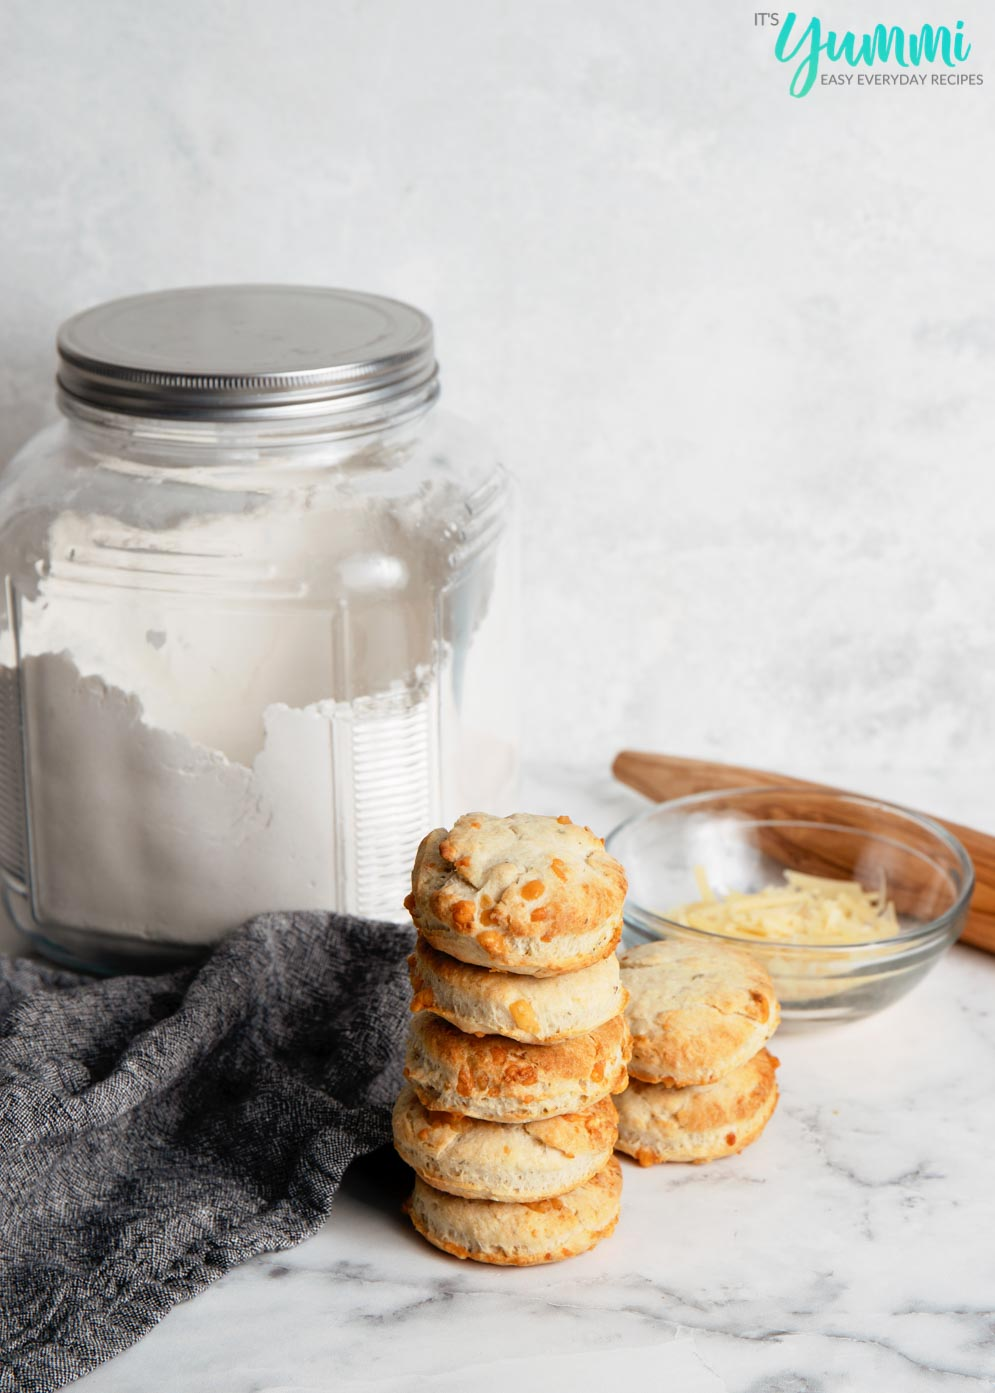 How to Make Bisquick from scratch using ingredients you already have in the pantry